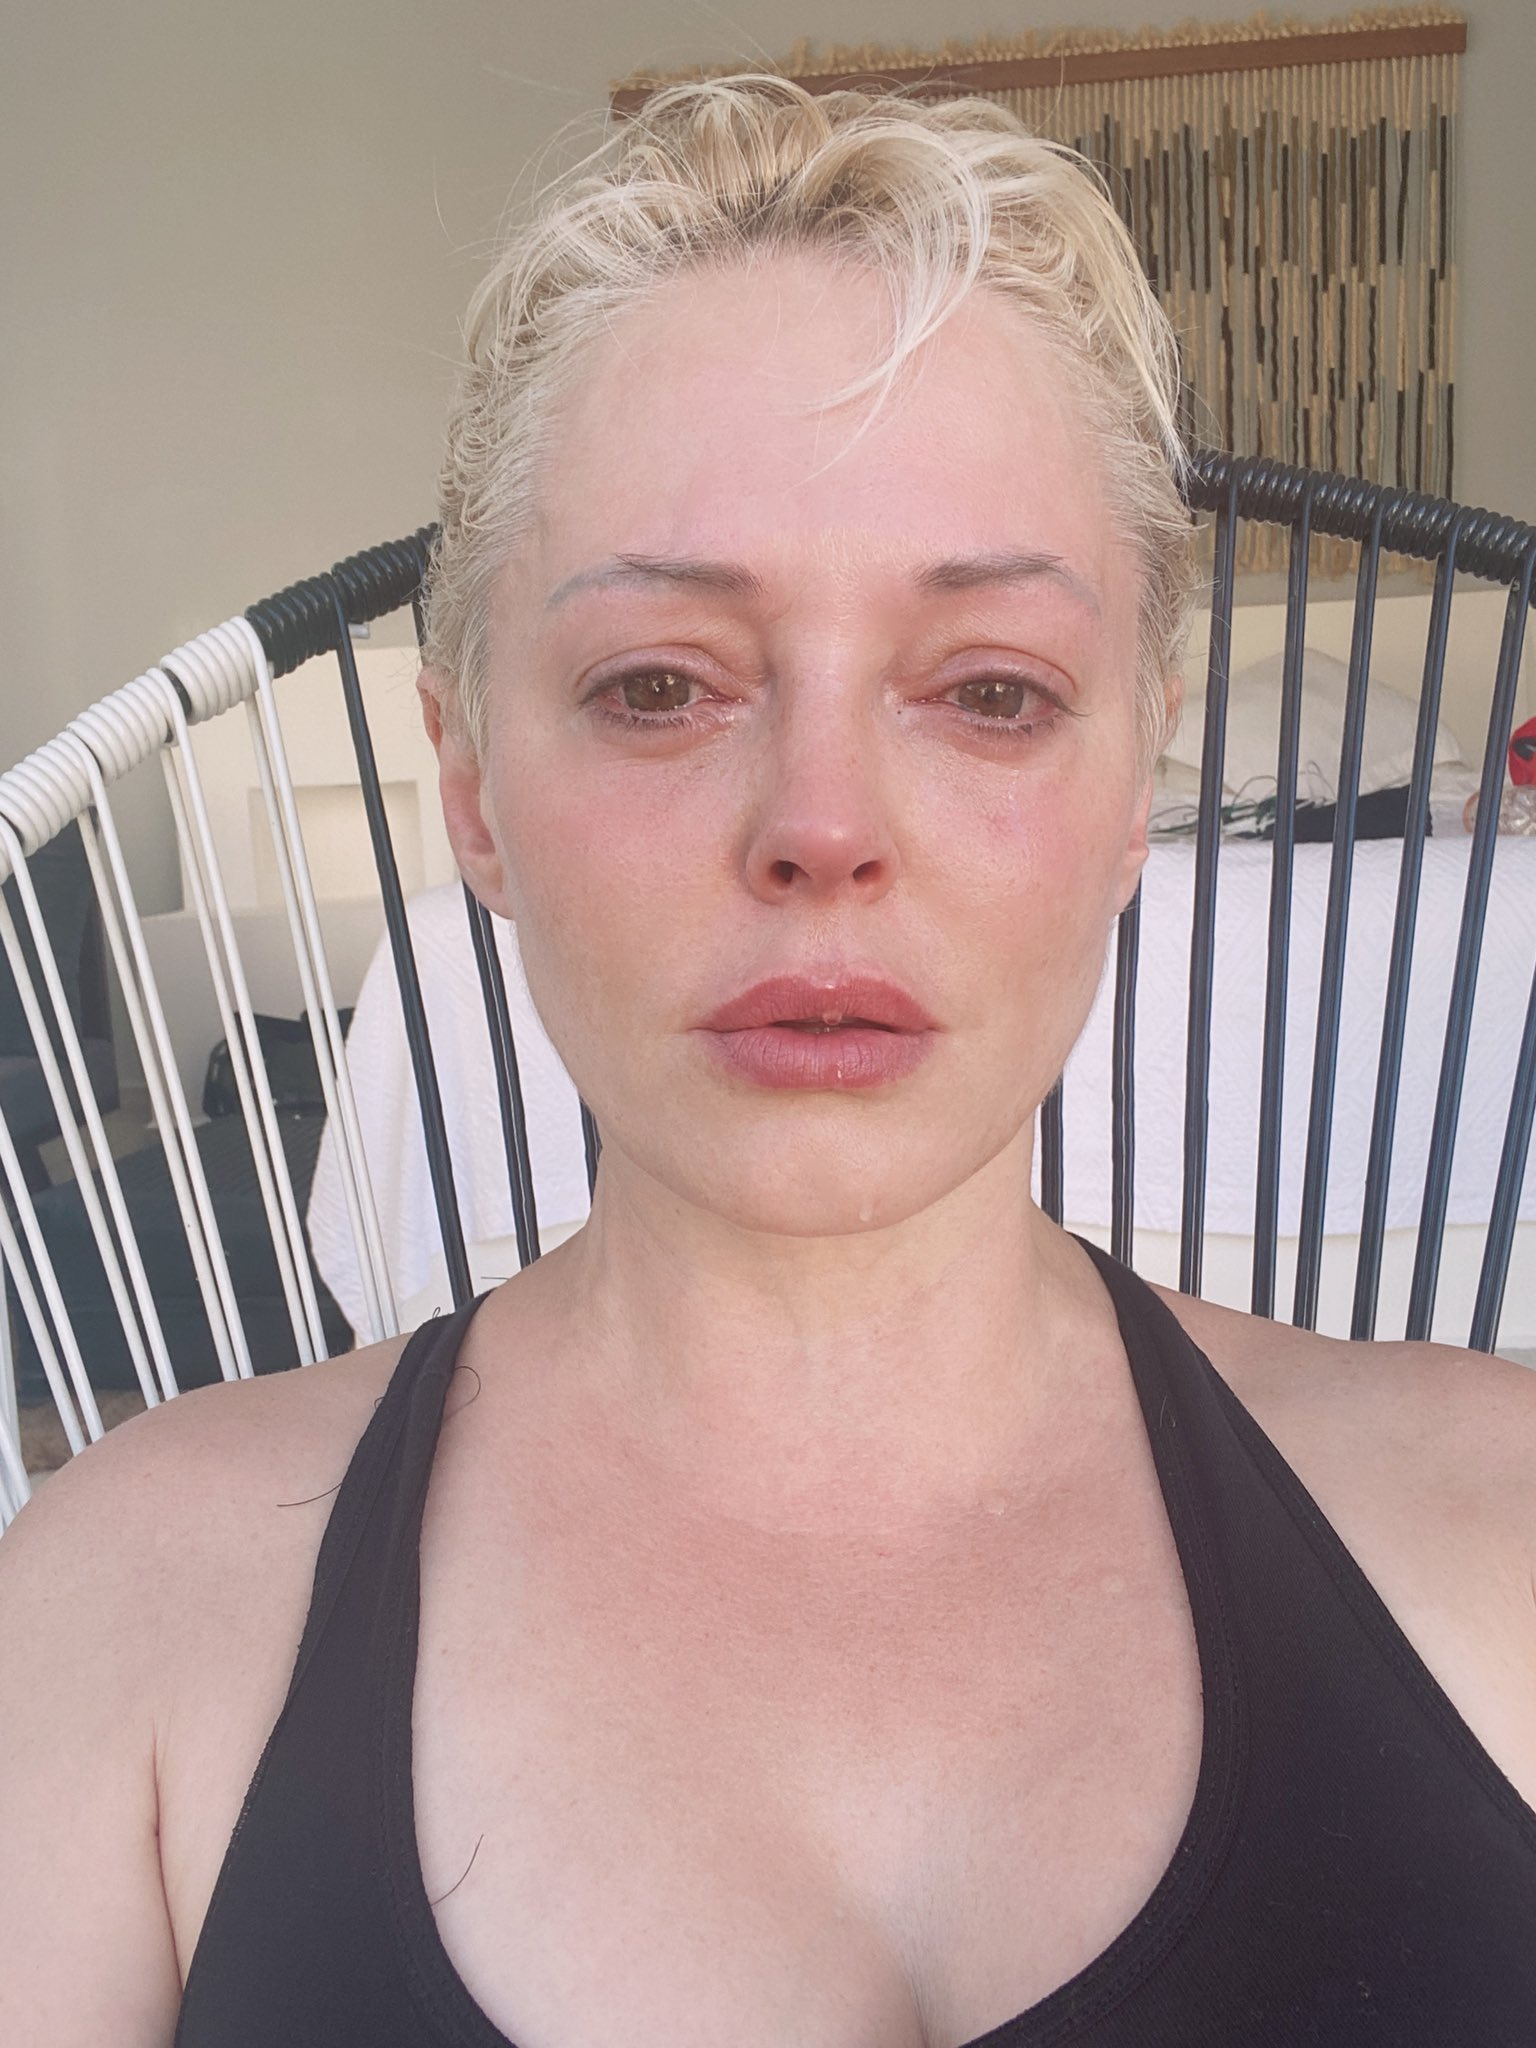 Rose Mcgowan On Twitter I M Really Sad And I M Really Tired I Normally Share Thoughts But Tonight It S Emotion